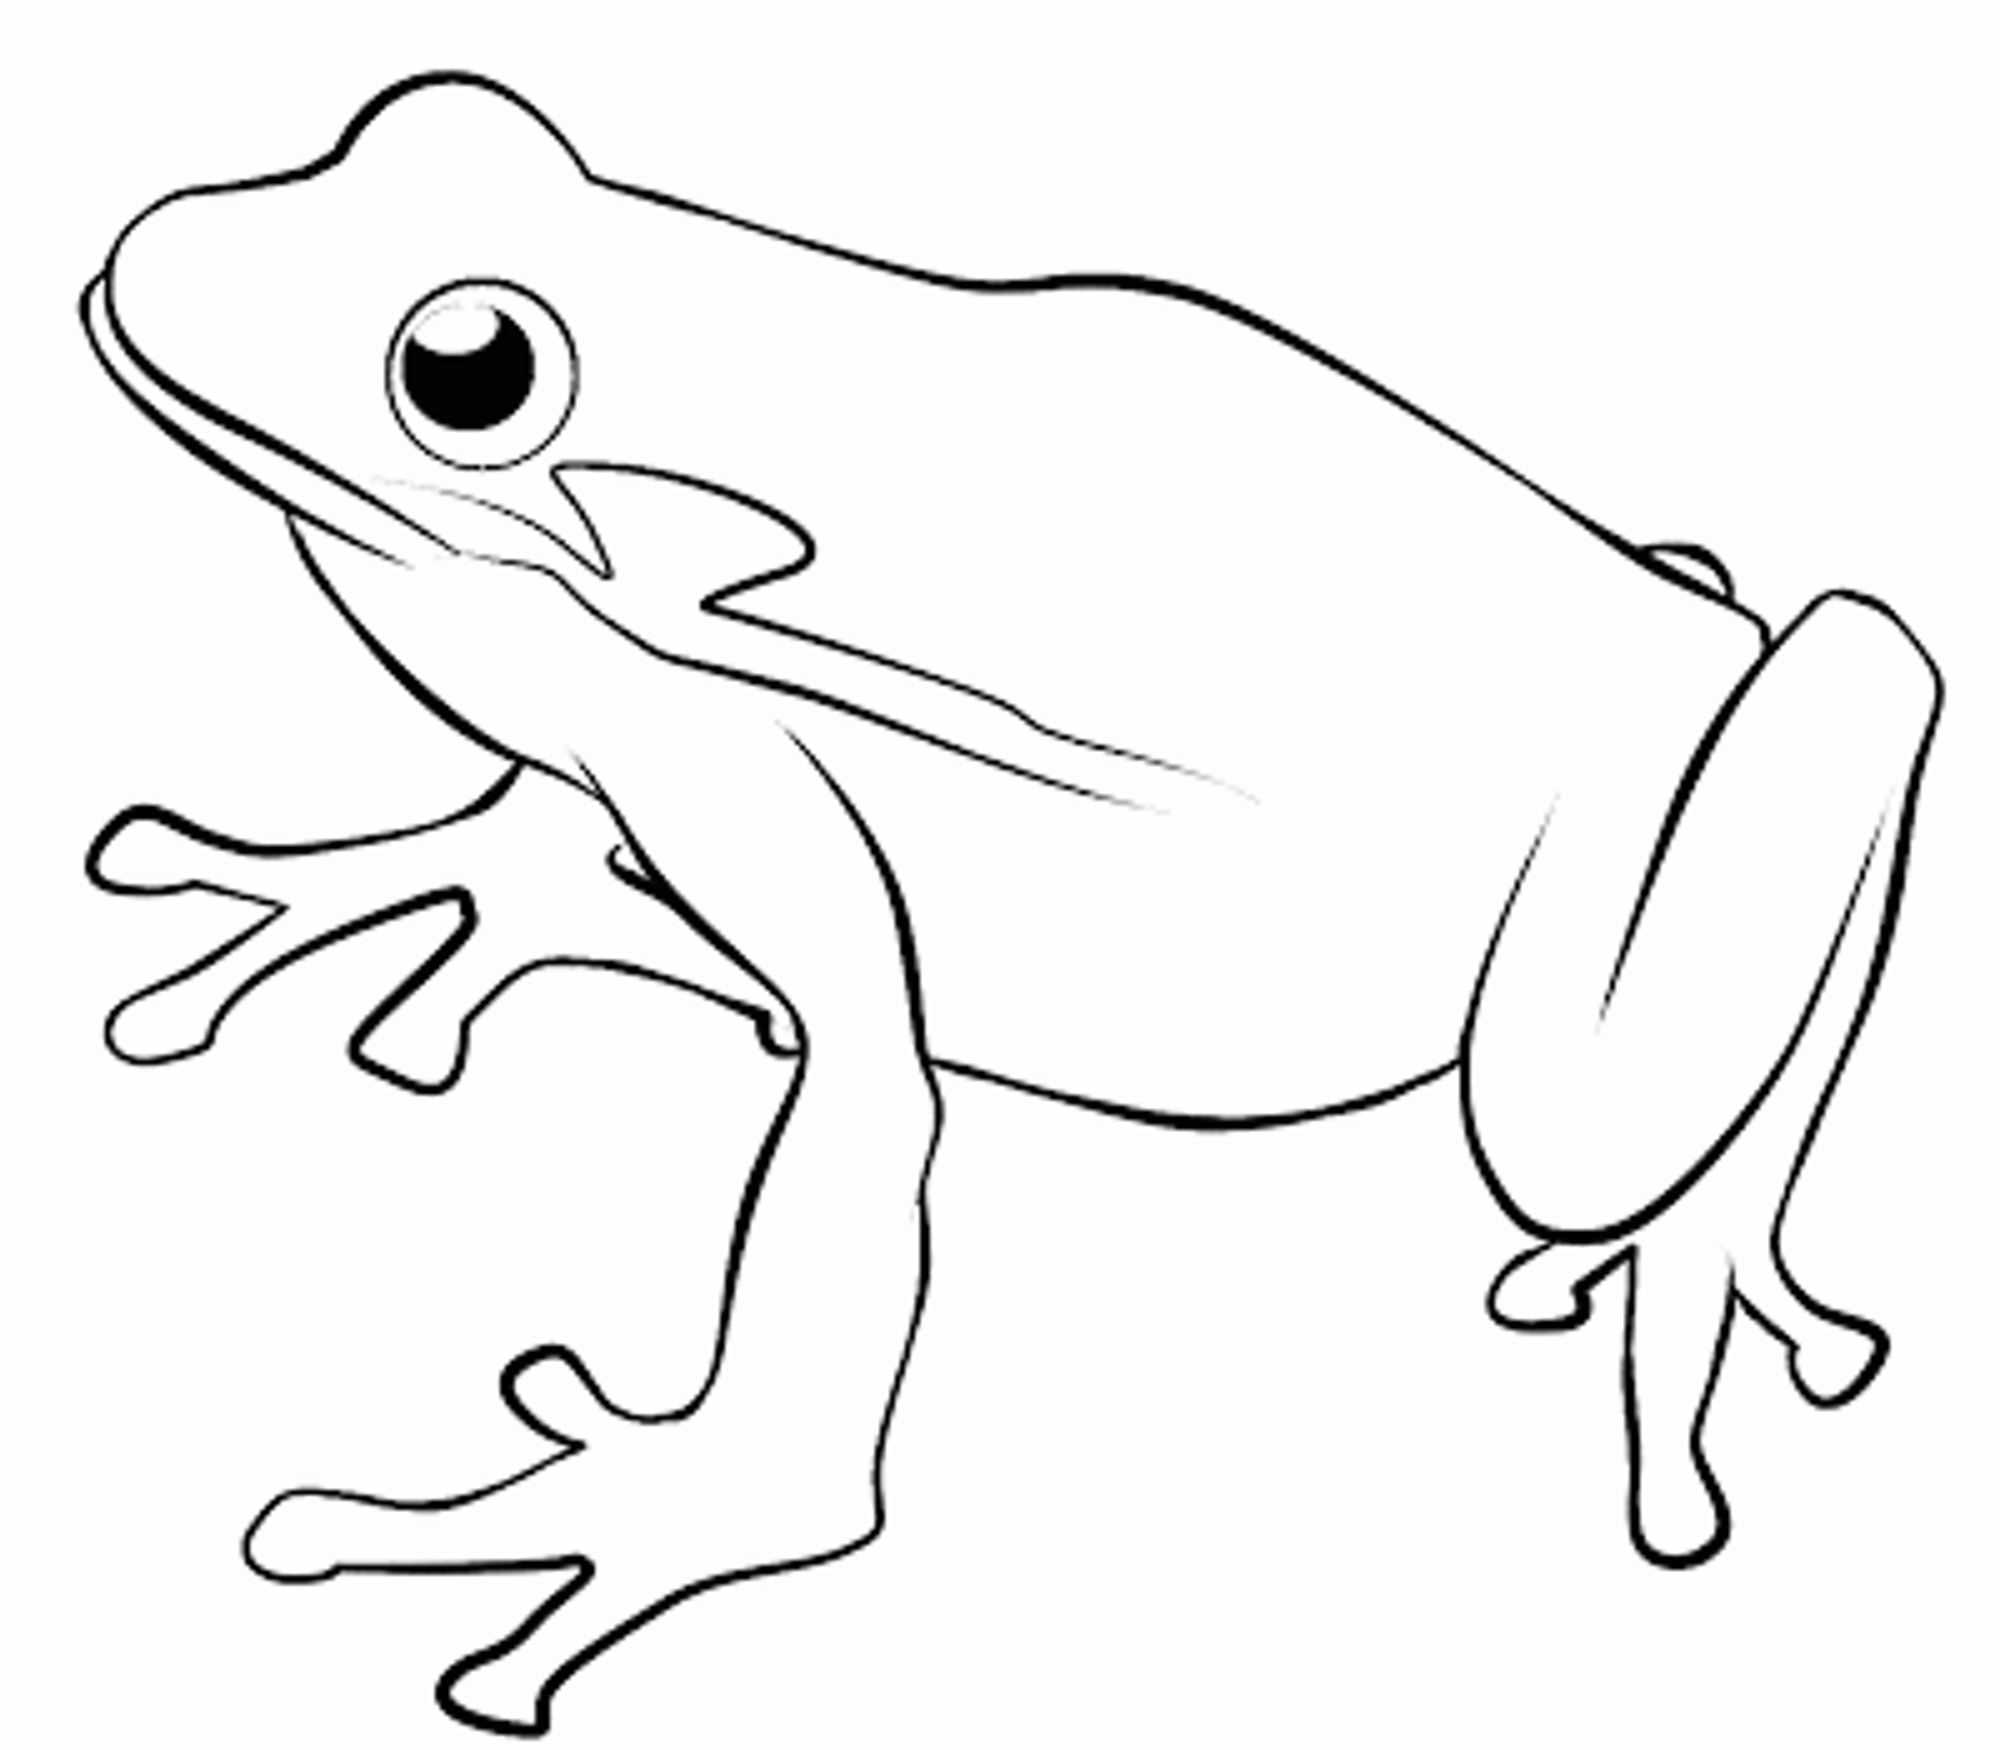 2000x1750 Lavishly Poison Dart Frog Coloring Pages Free For Kids